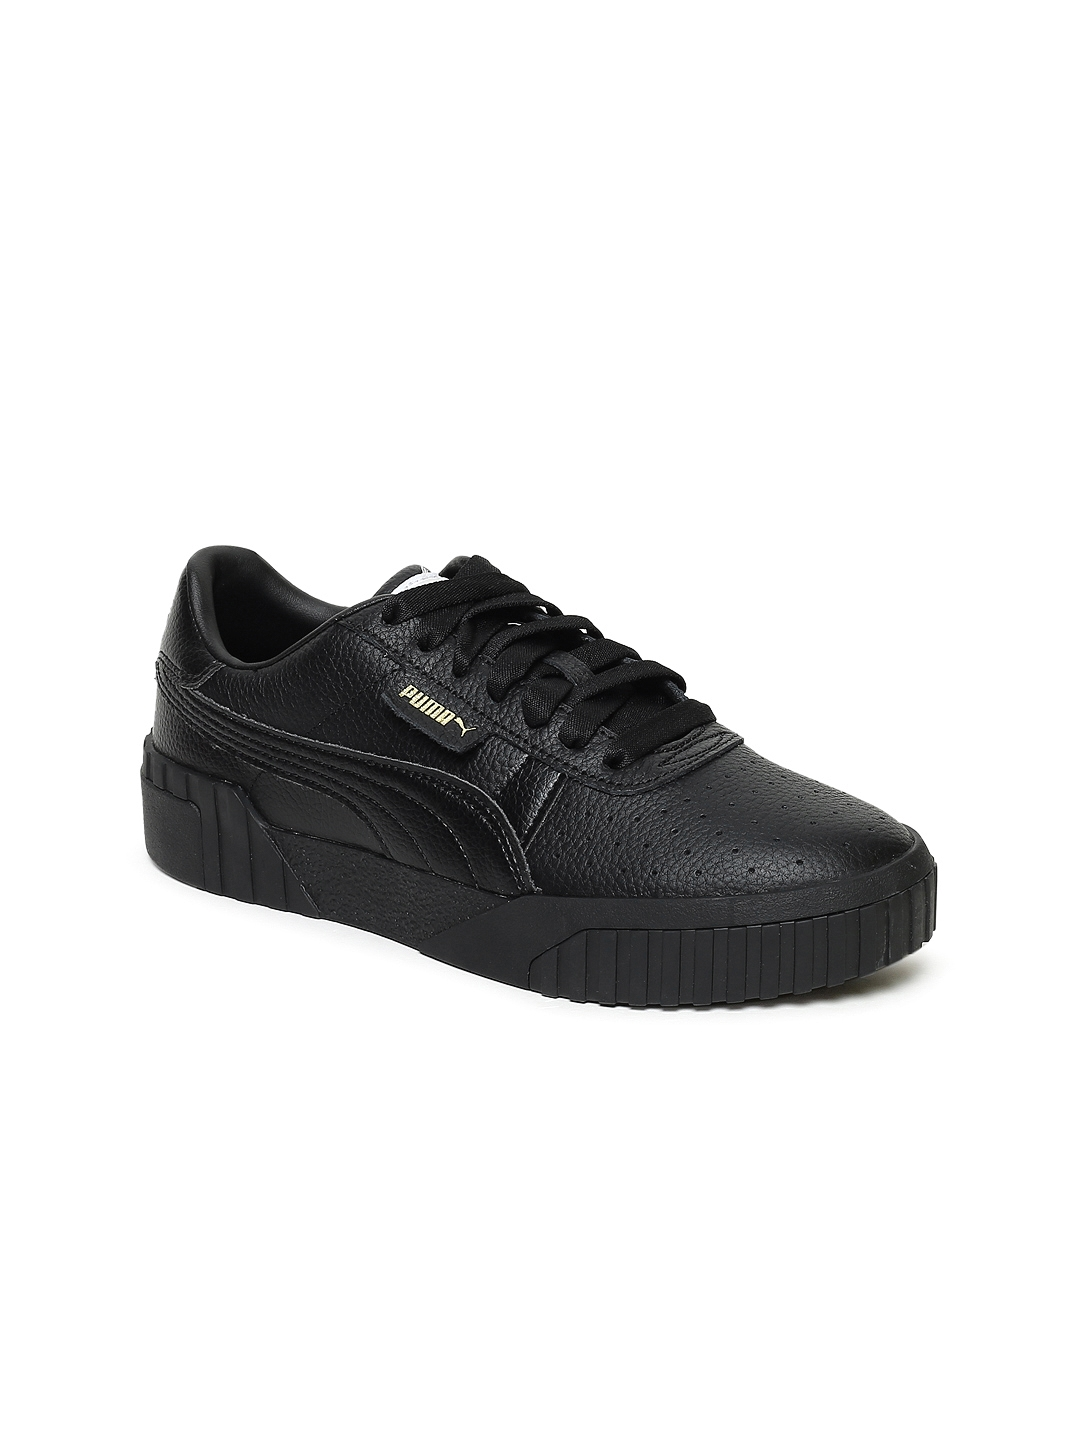 f383a27bd0973b Buy Puma Women Black Cali Leather Sneakers - Casual Shoes for Women ...